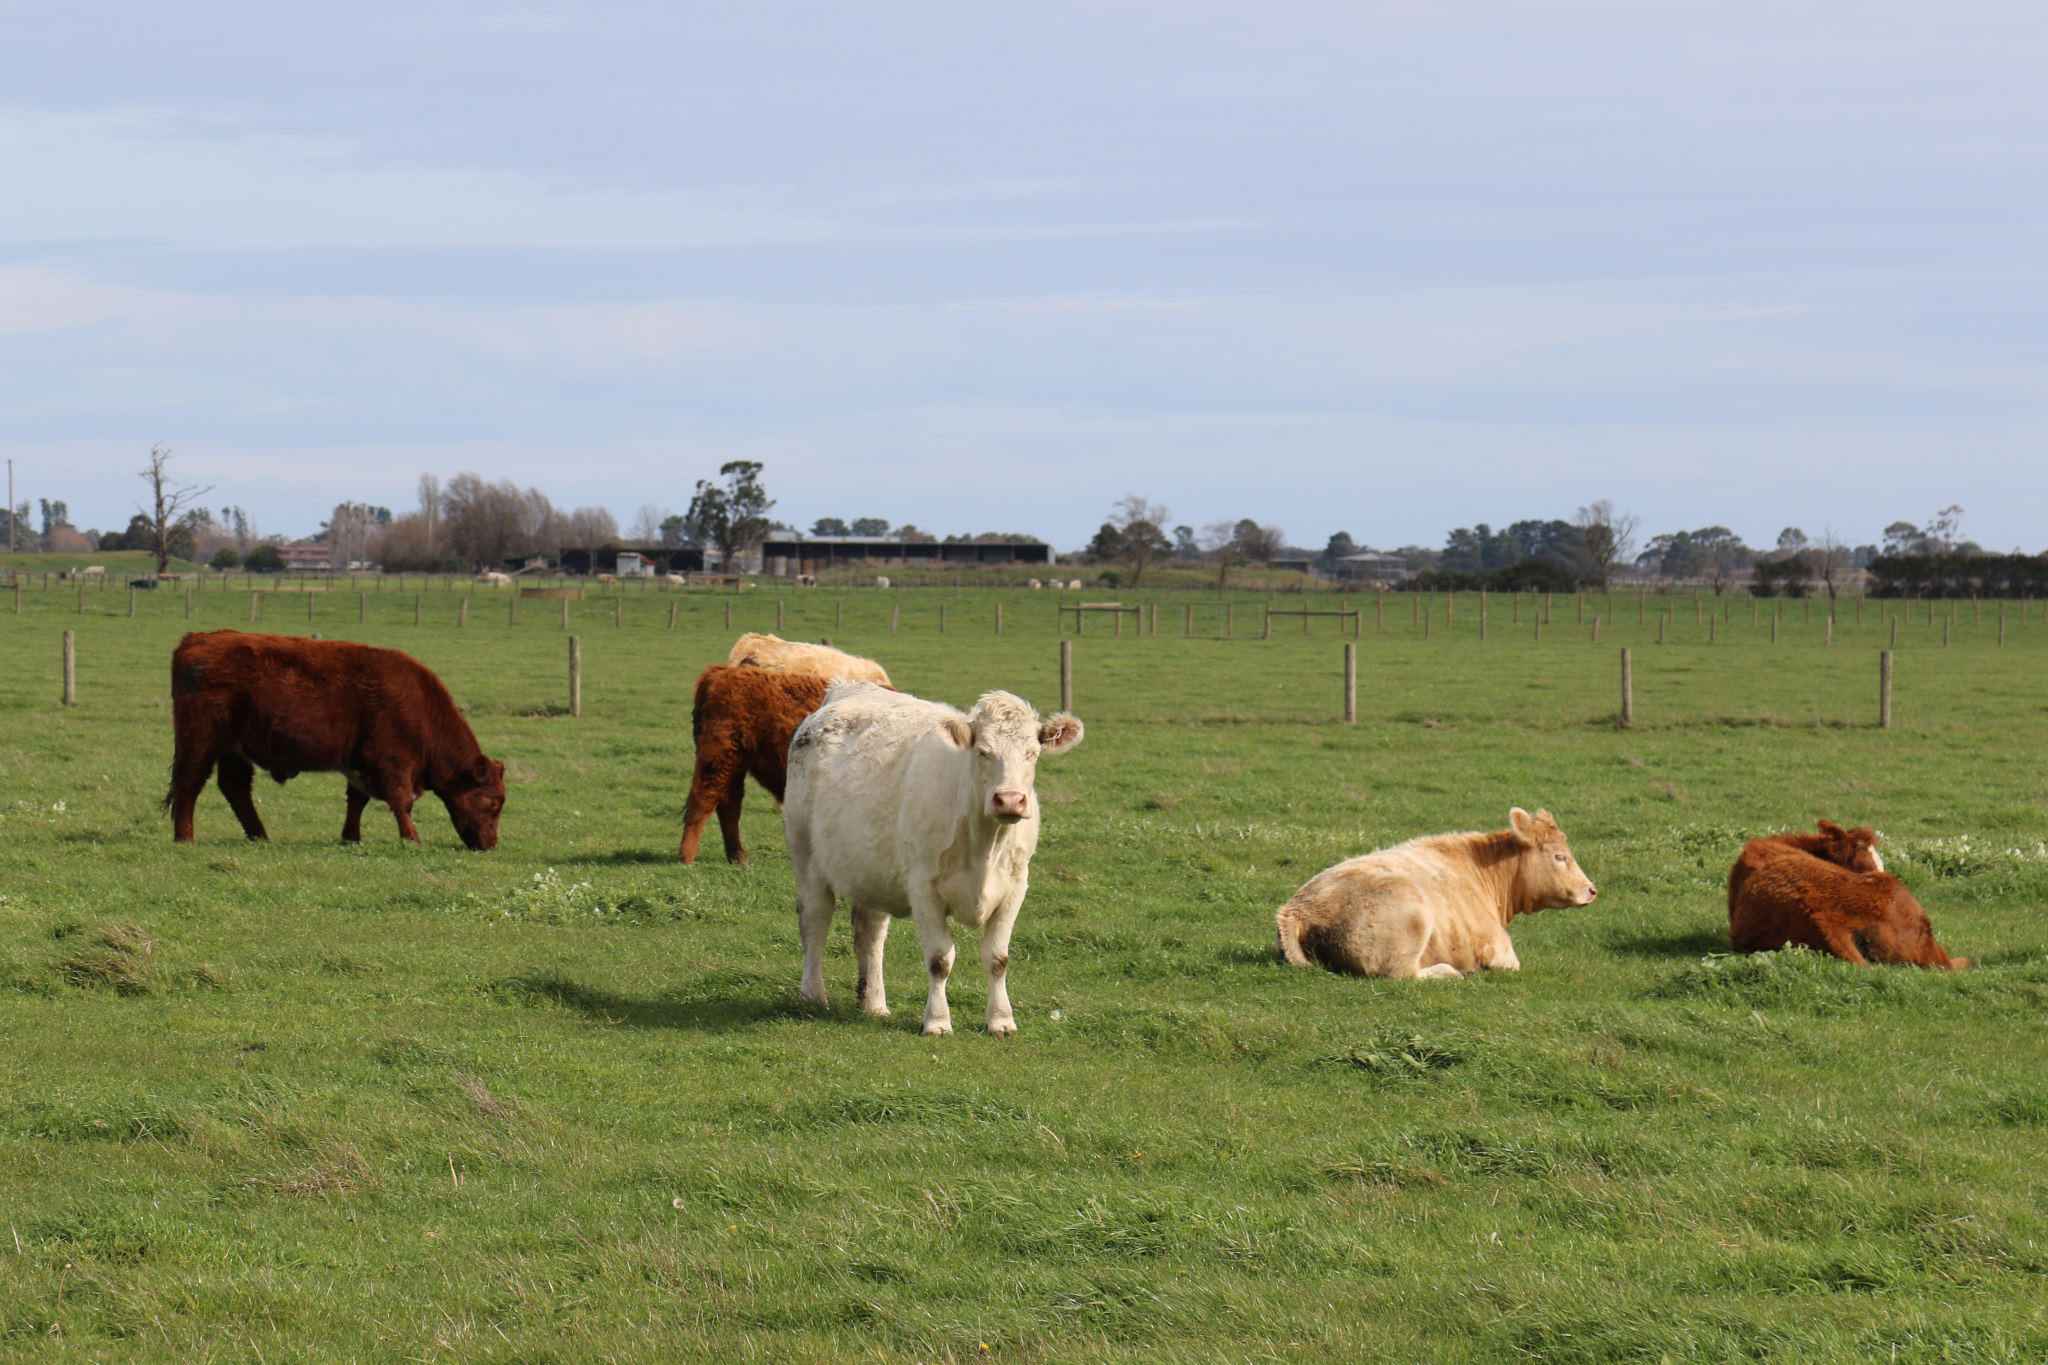 Cattle Indications - Cows grazing on green farm